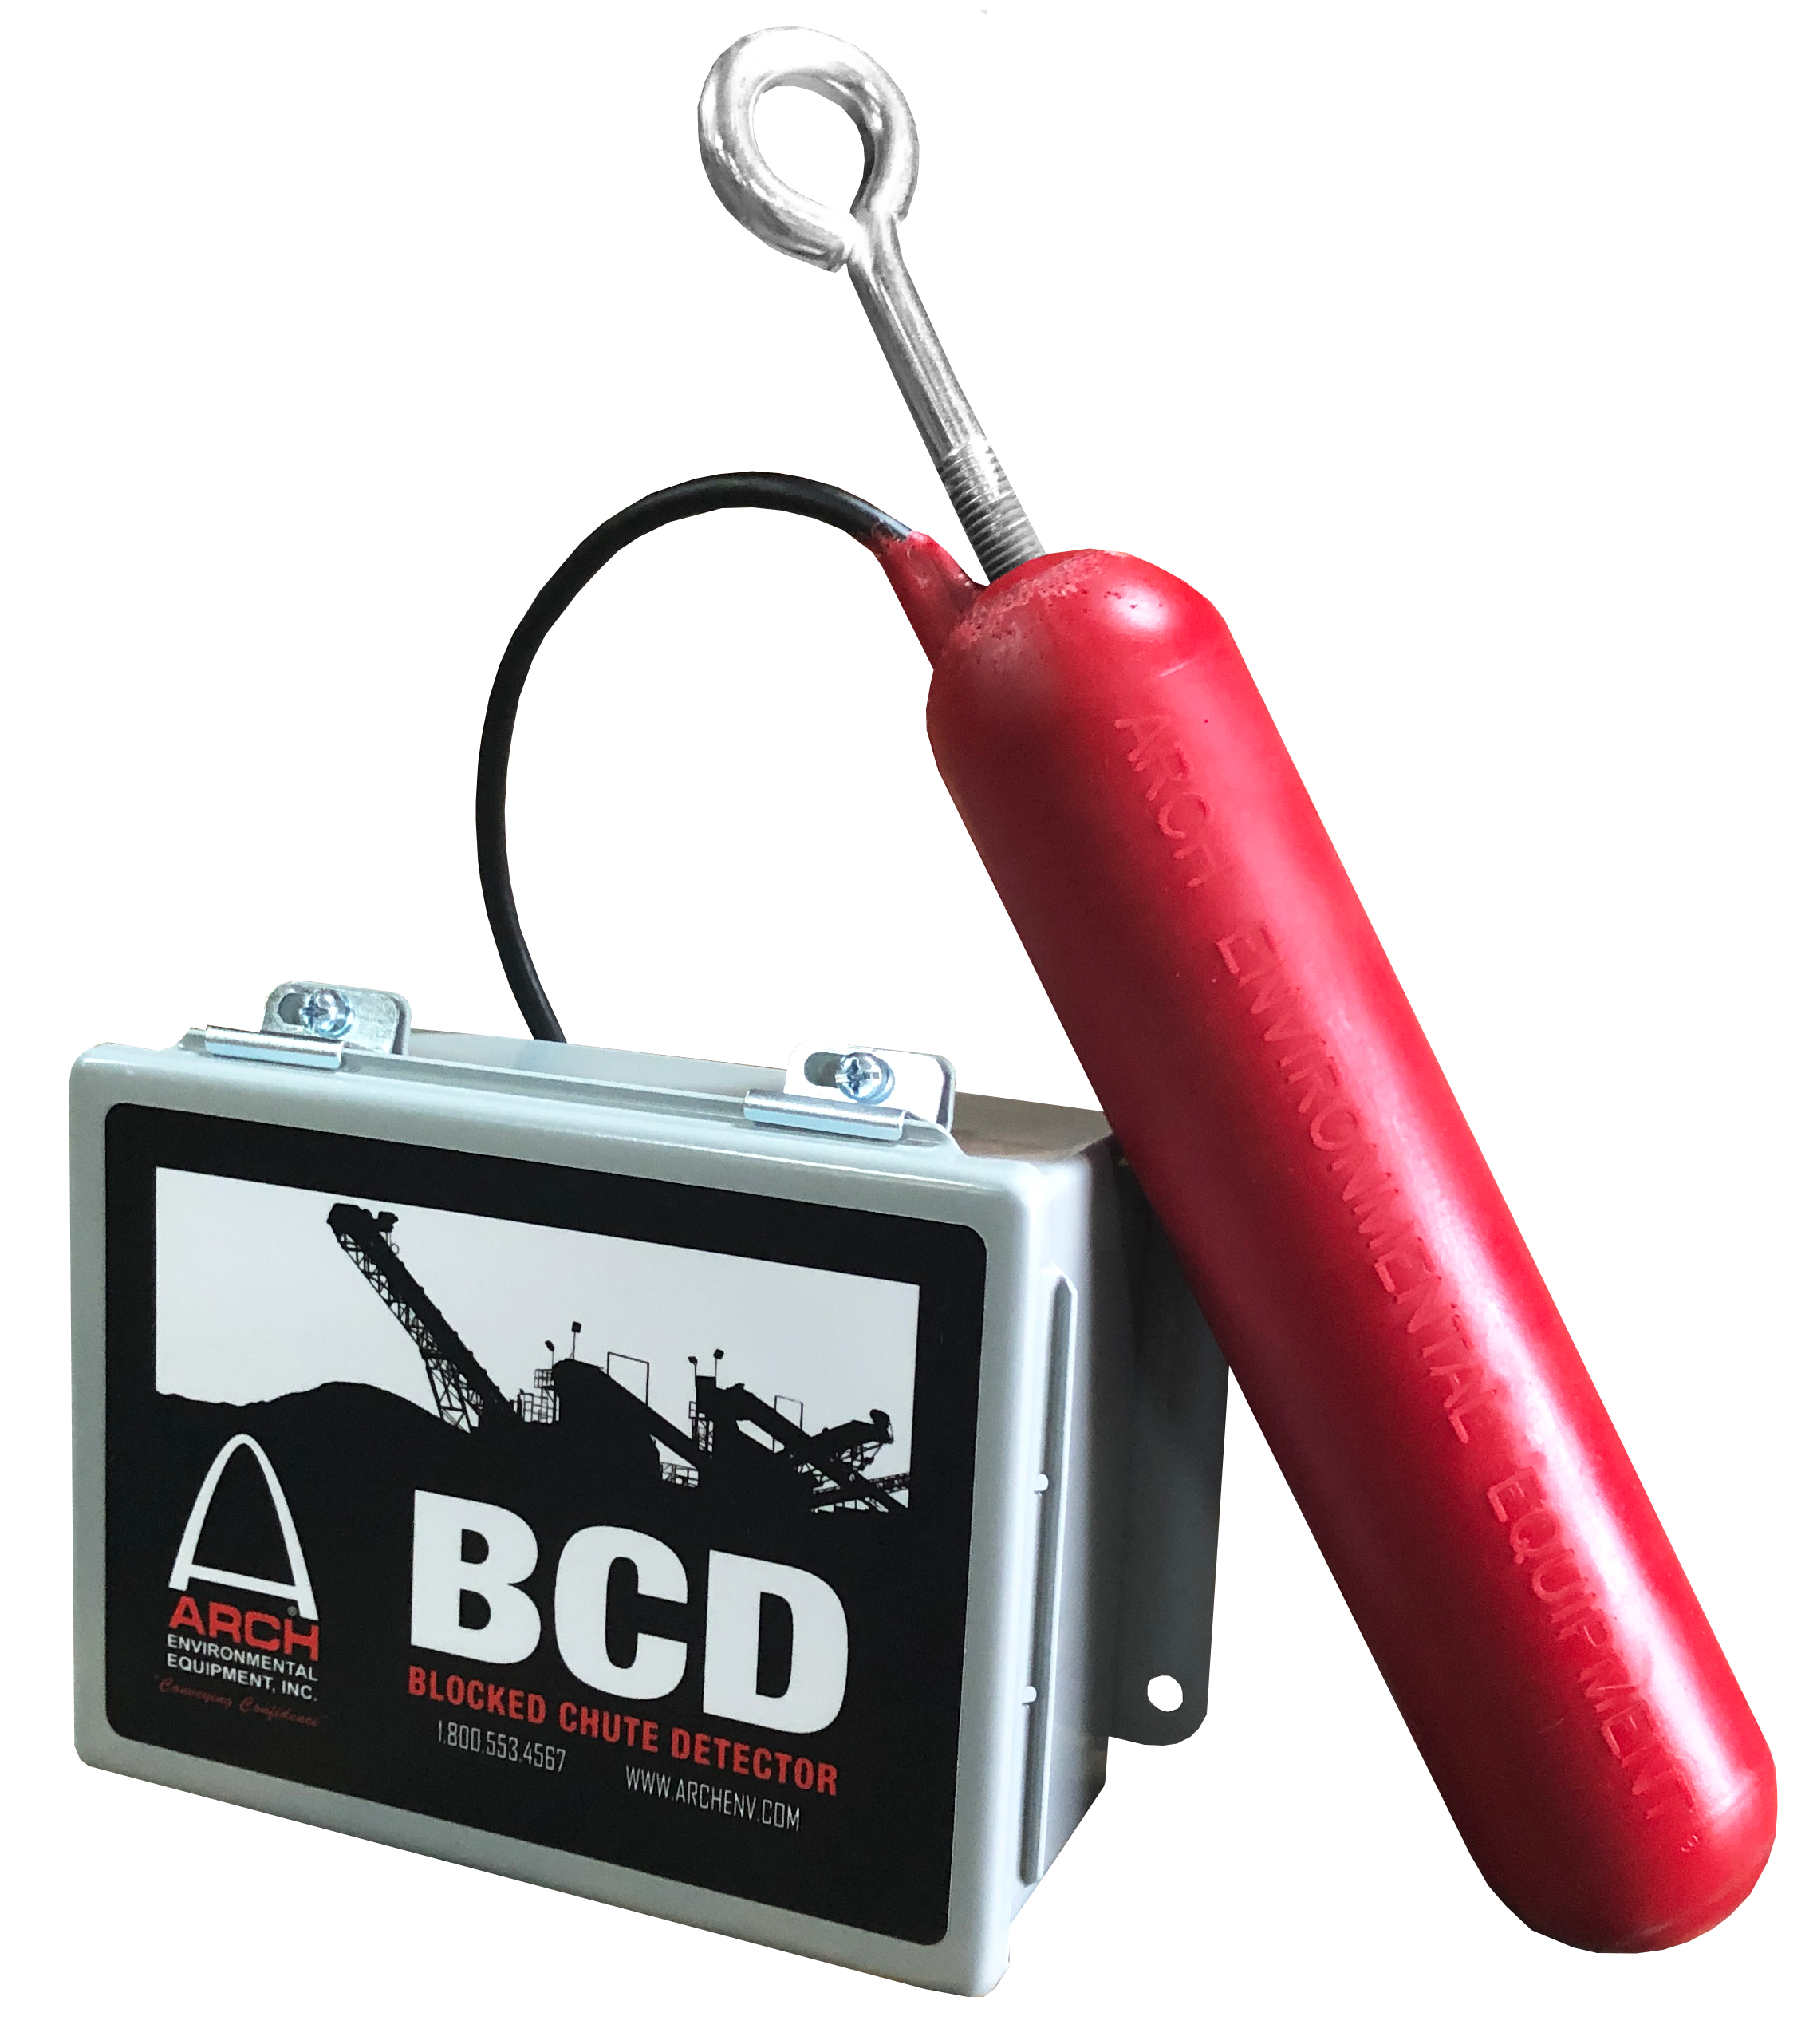 ARCH Environmental Equipment, Inc | Belt & Personal Protection | CTS 600 BCD Blocked Chute Detector